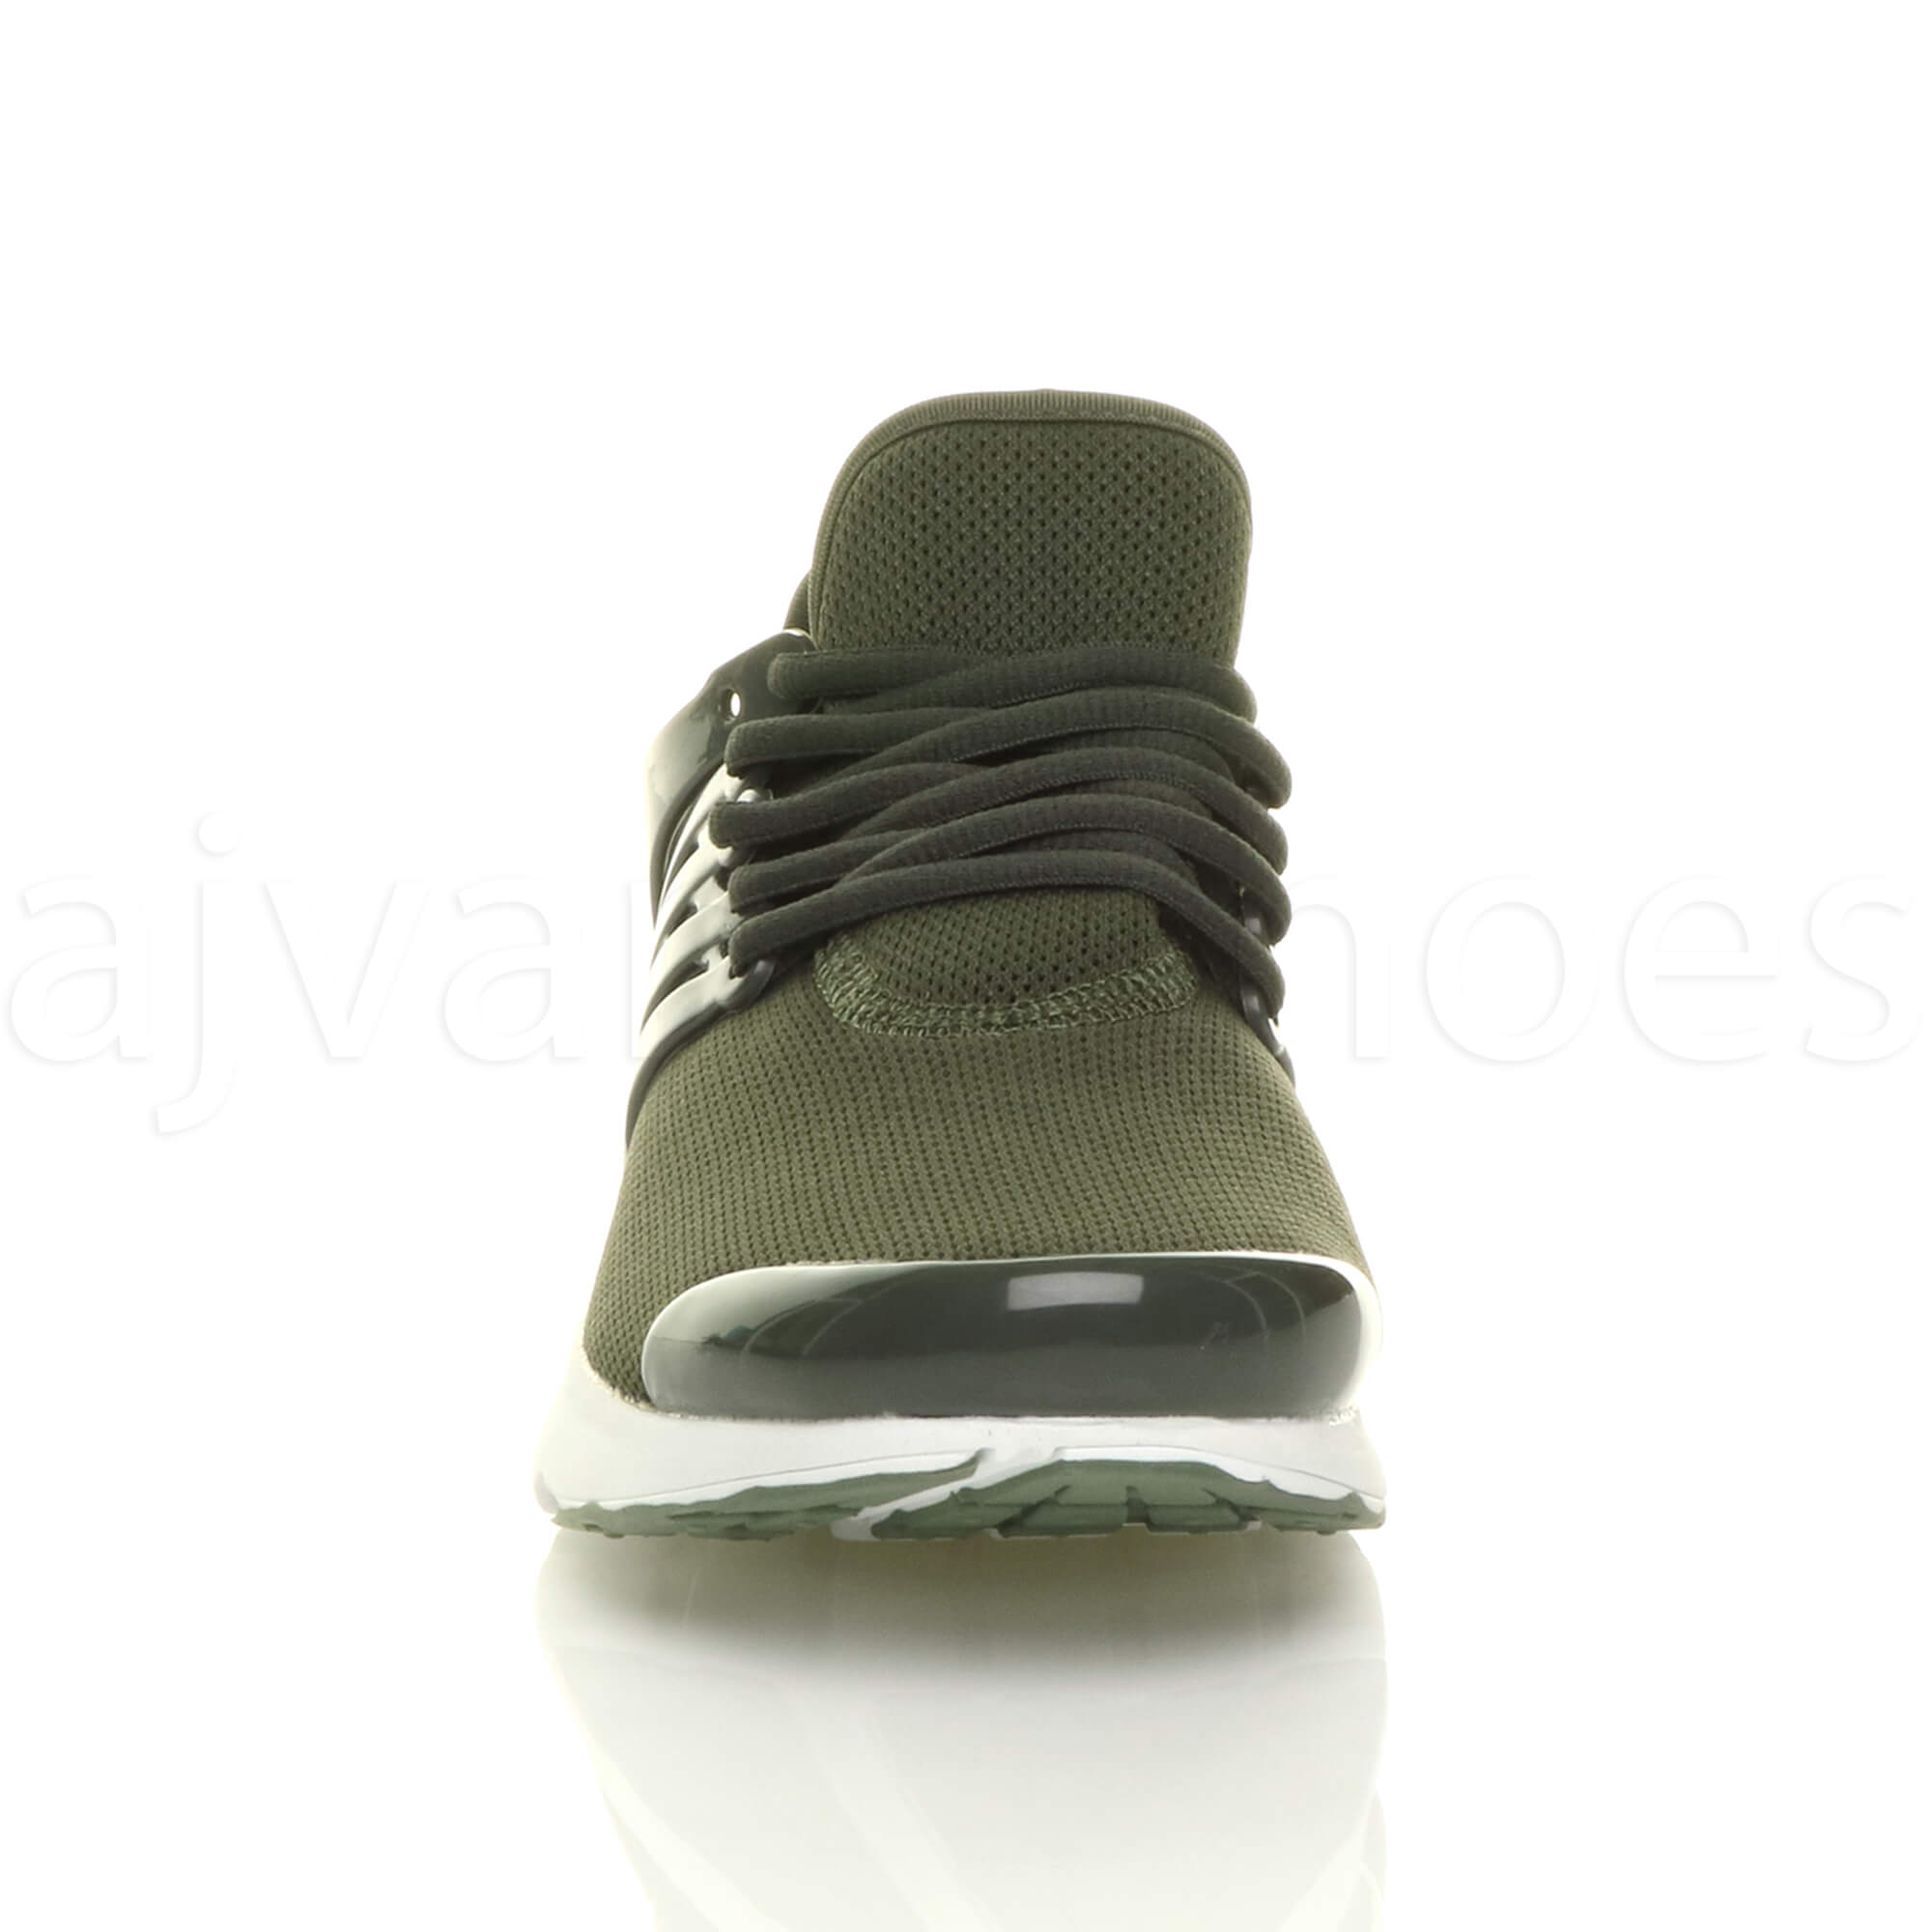 MENS-LACE-UP-SPORTS-GYM-FITNESS-RUNNING-FLEXIBLE-TRAINERS-CASUAL-SNEAKERS-SIZE thumbnail 31